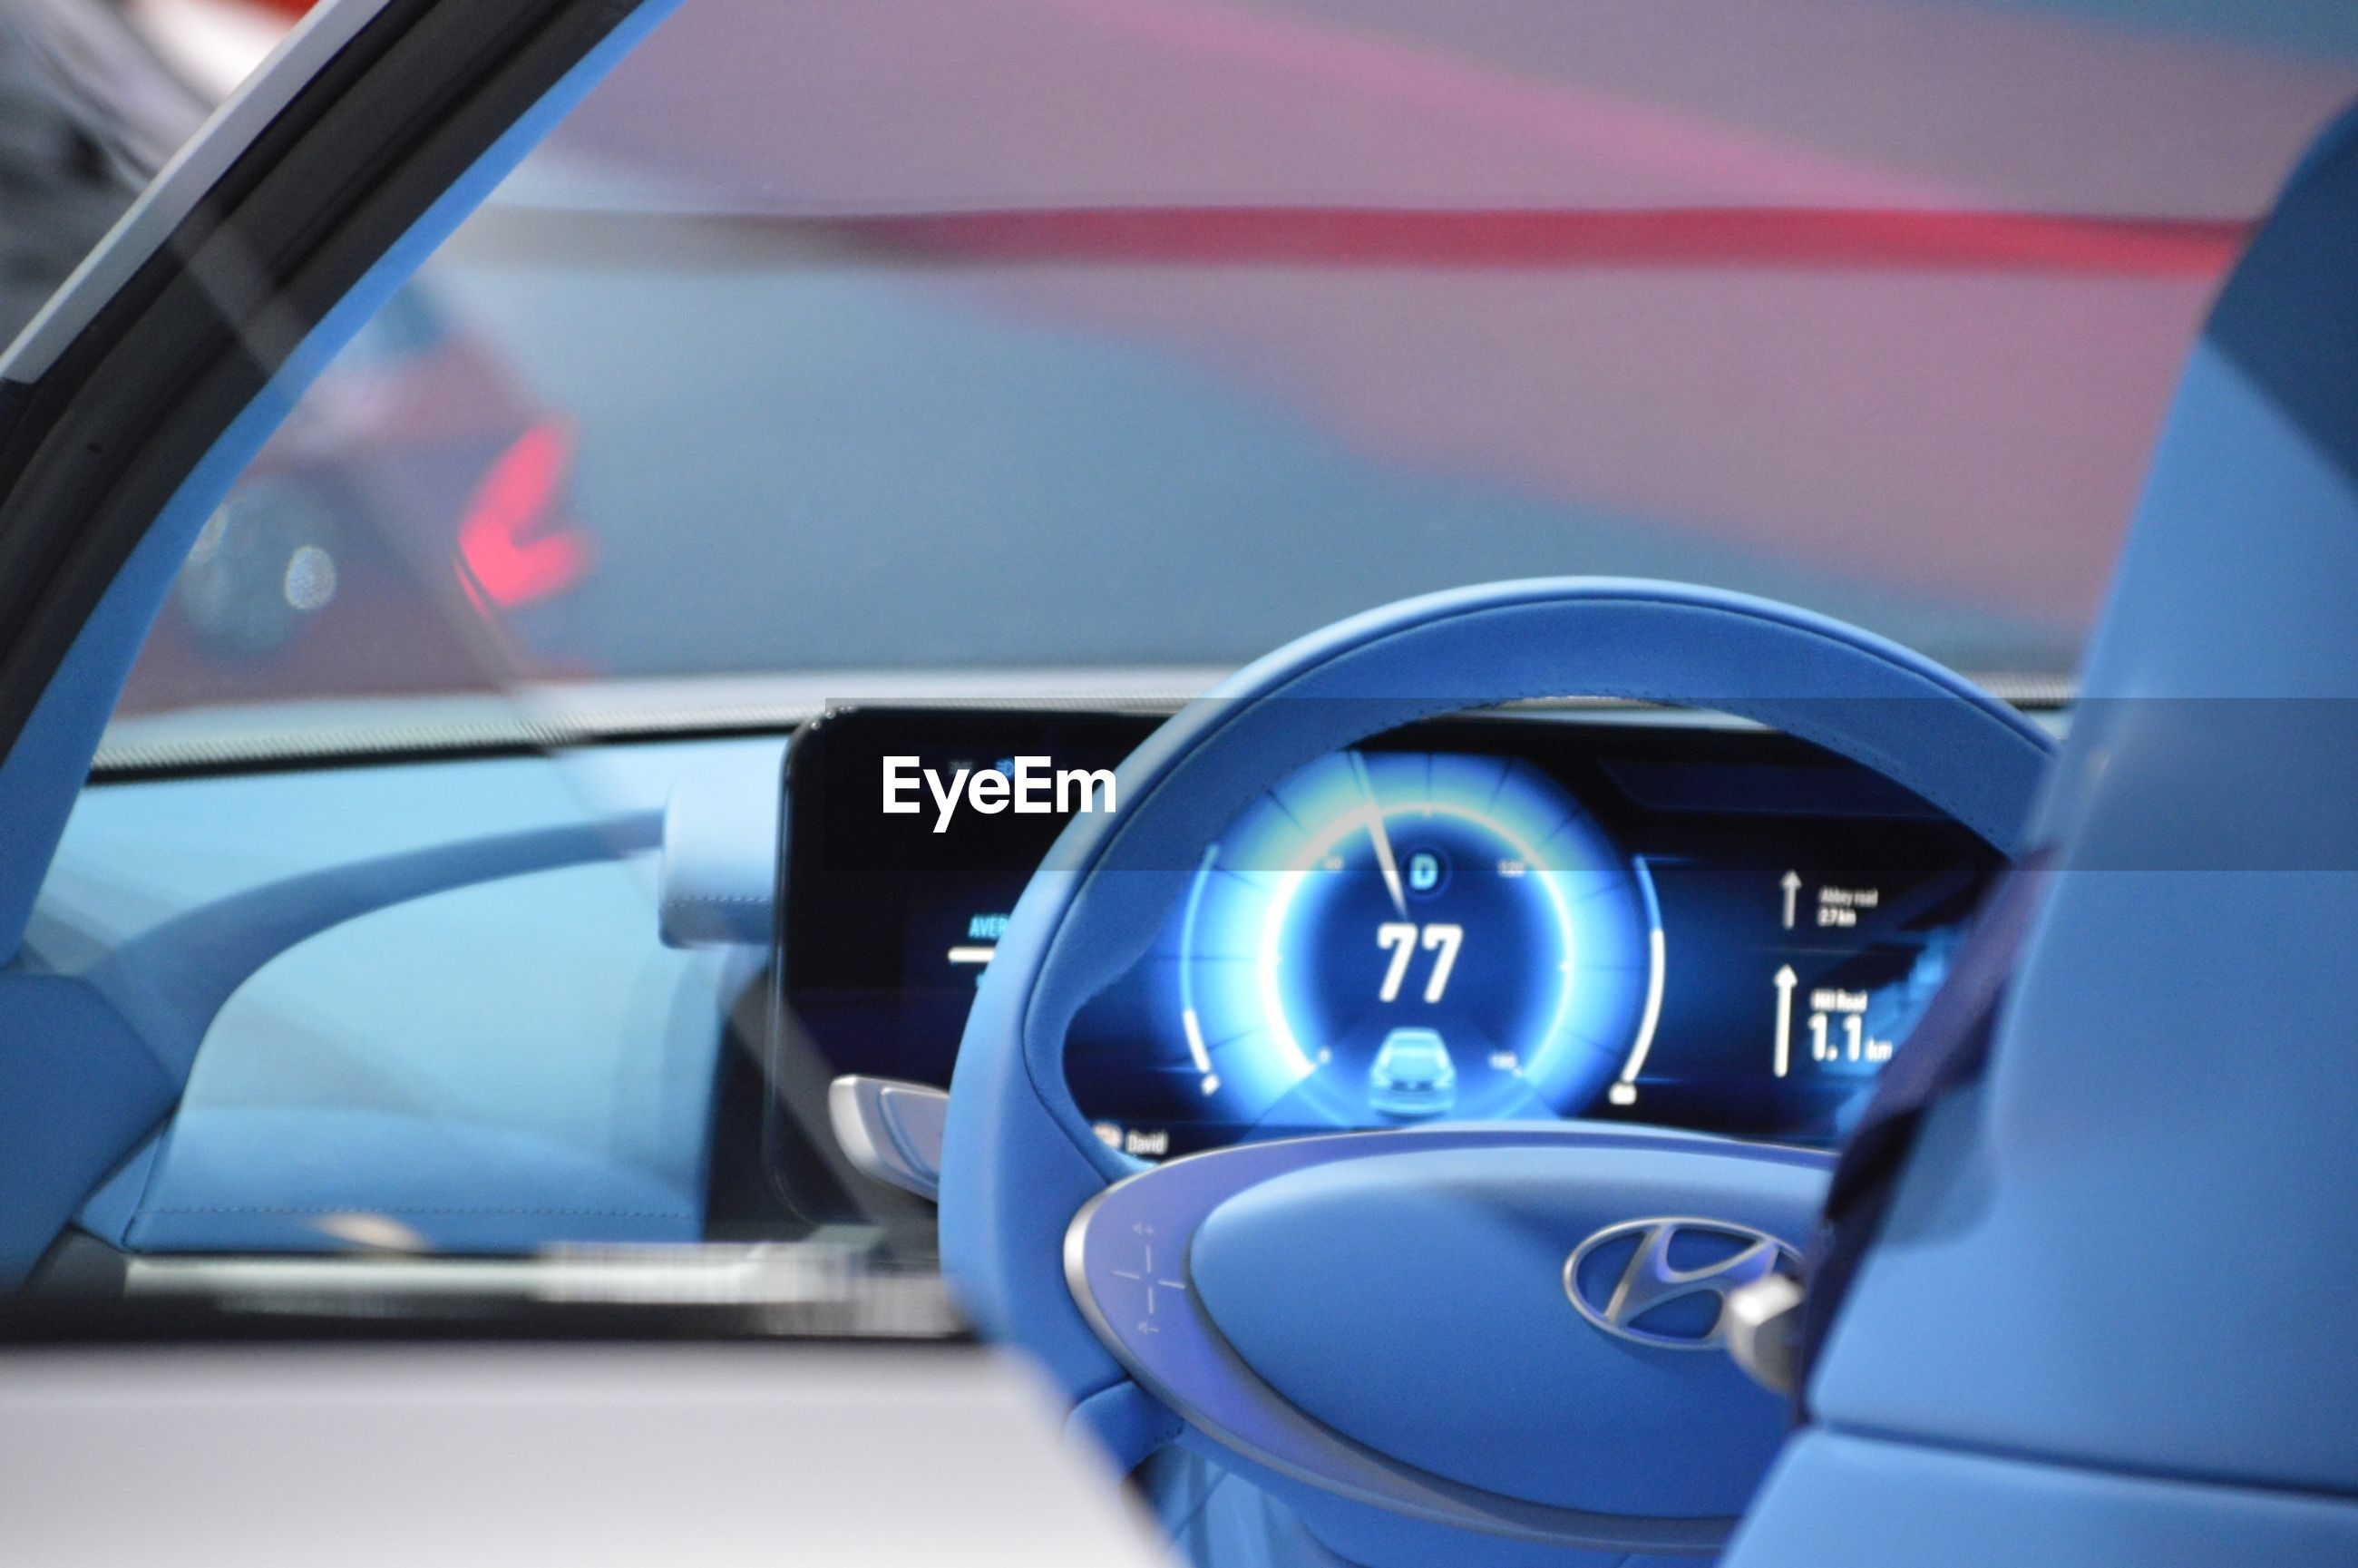 car, transportation, car interior, vehicle interior, mode of transport, land vehicle, dashboard, speedometer, close-up, steering wheel, illuminated, no people, cockpit, control panel, gearshift, indoors, gauge, day